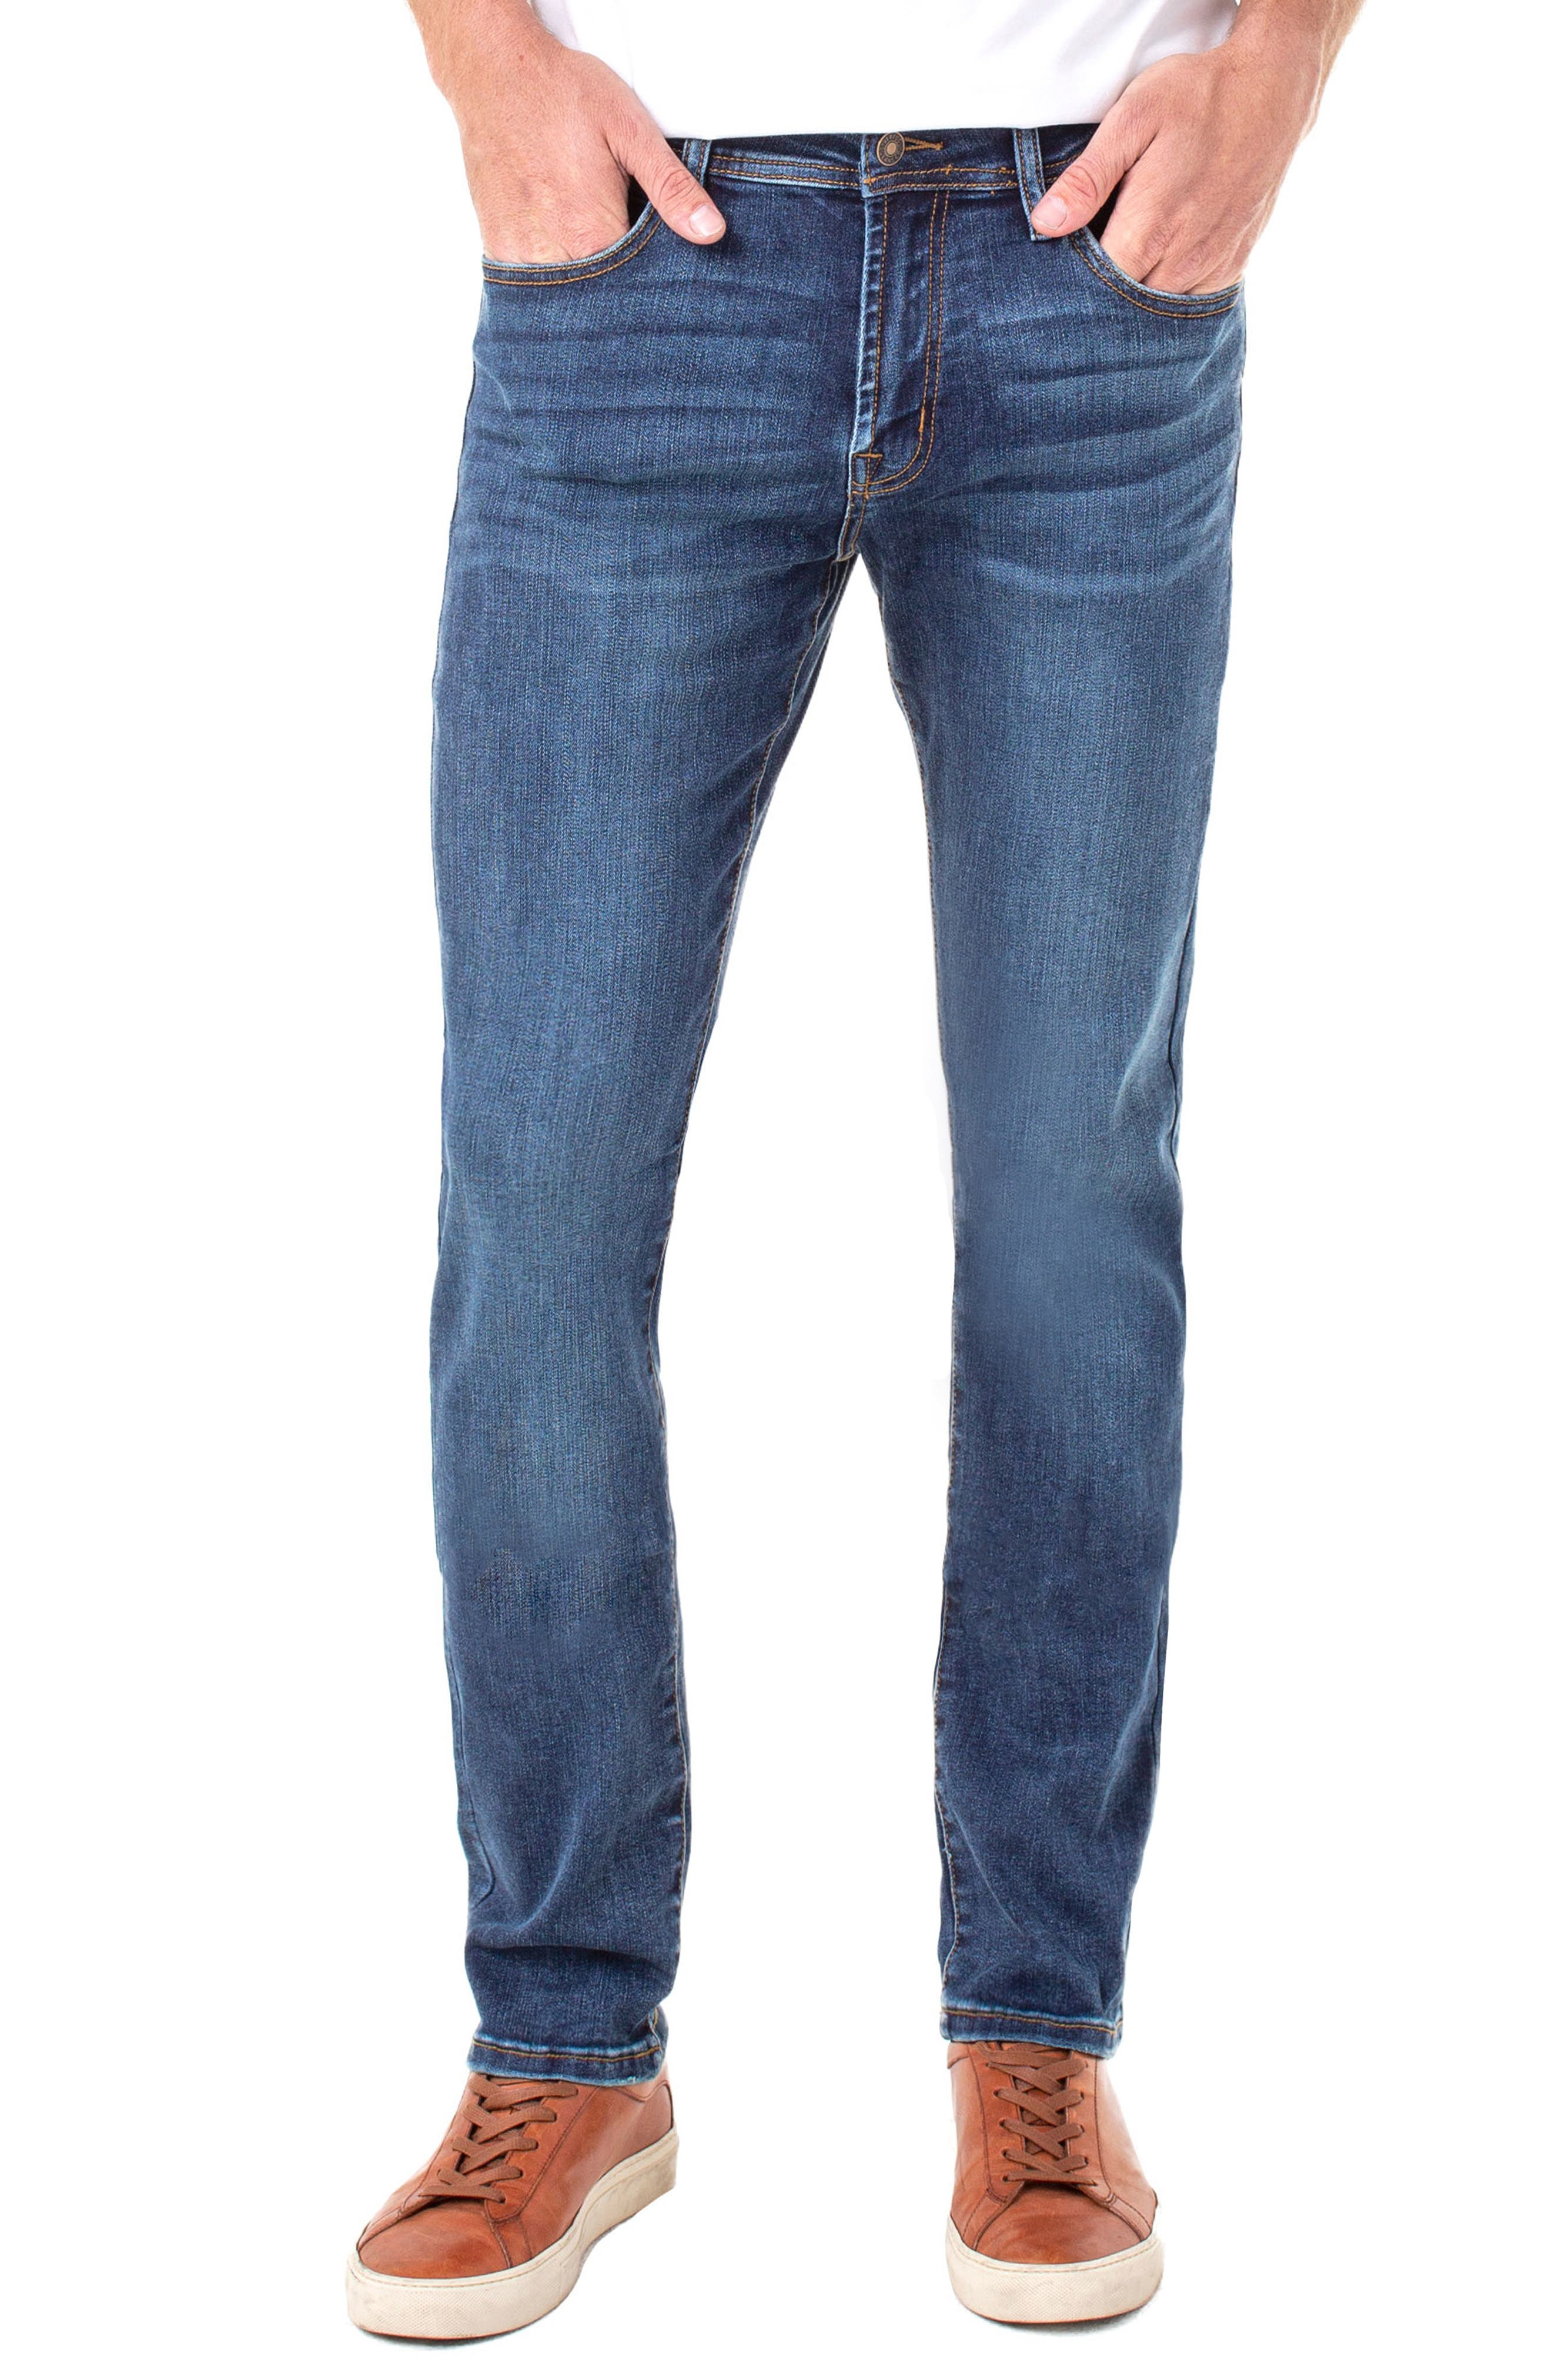 Regent Relaxed Fit Jeans,                             Main thumbnail 1, color,                             ADVENT